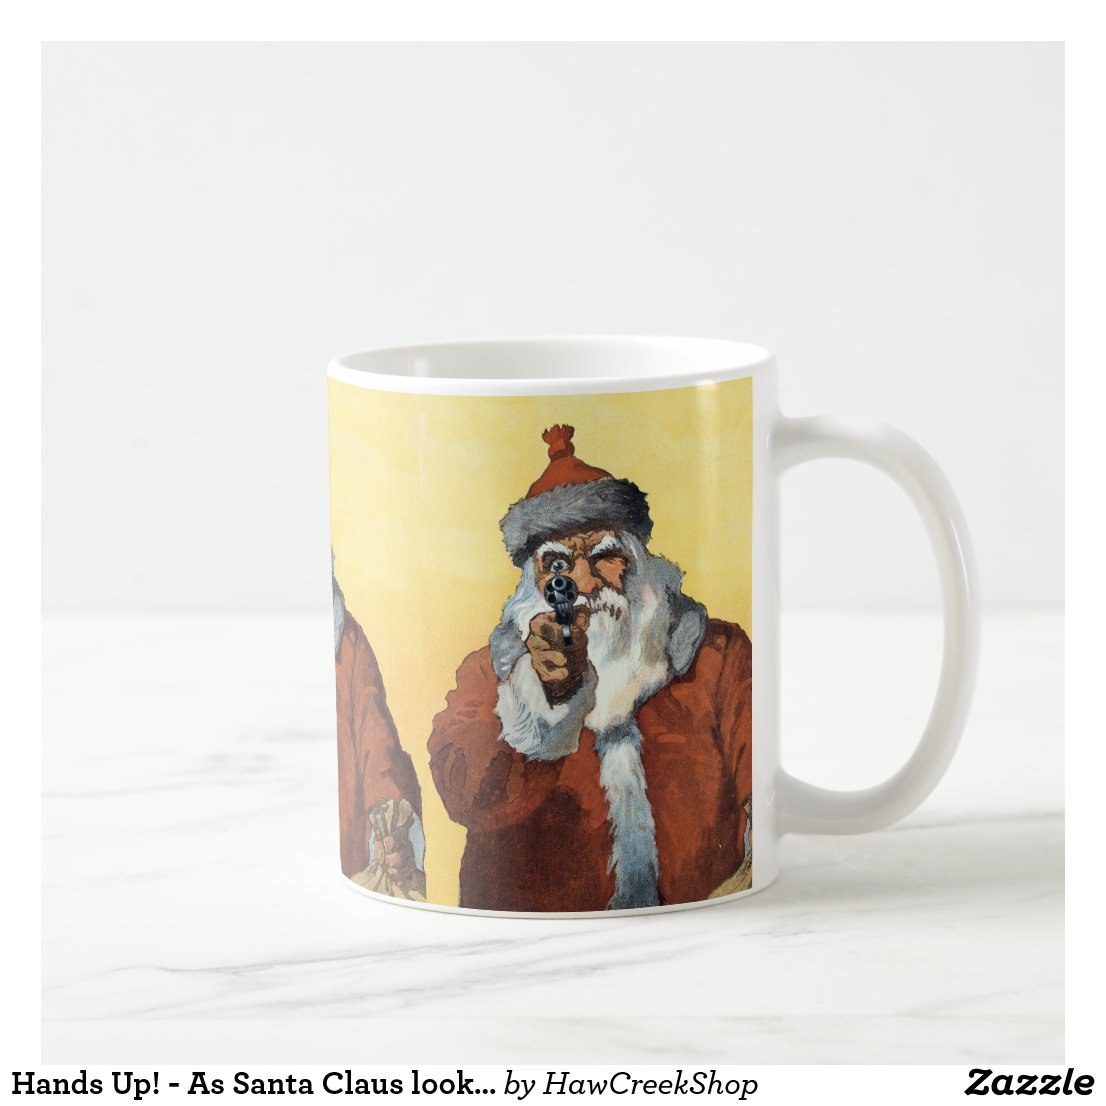 Hands Up! - As Santa Claus looks to some of us. Coffee Mug